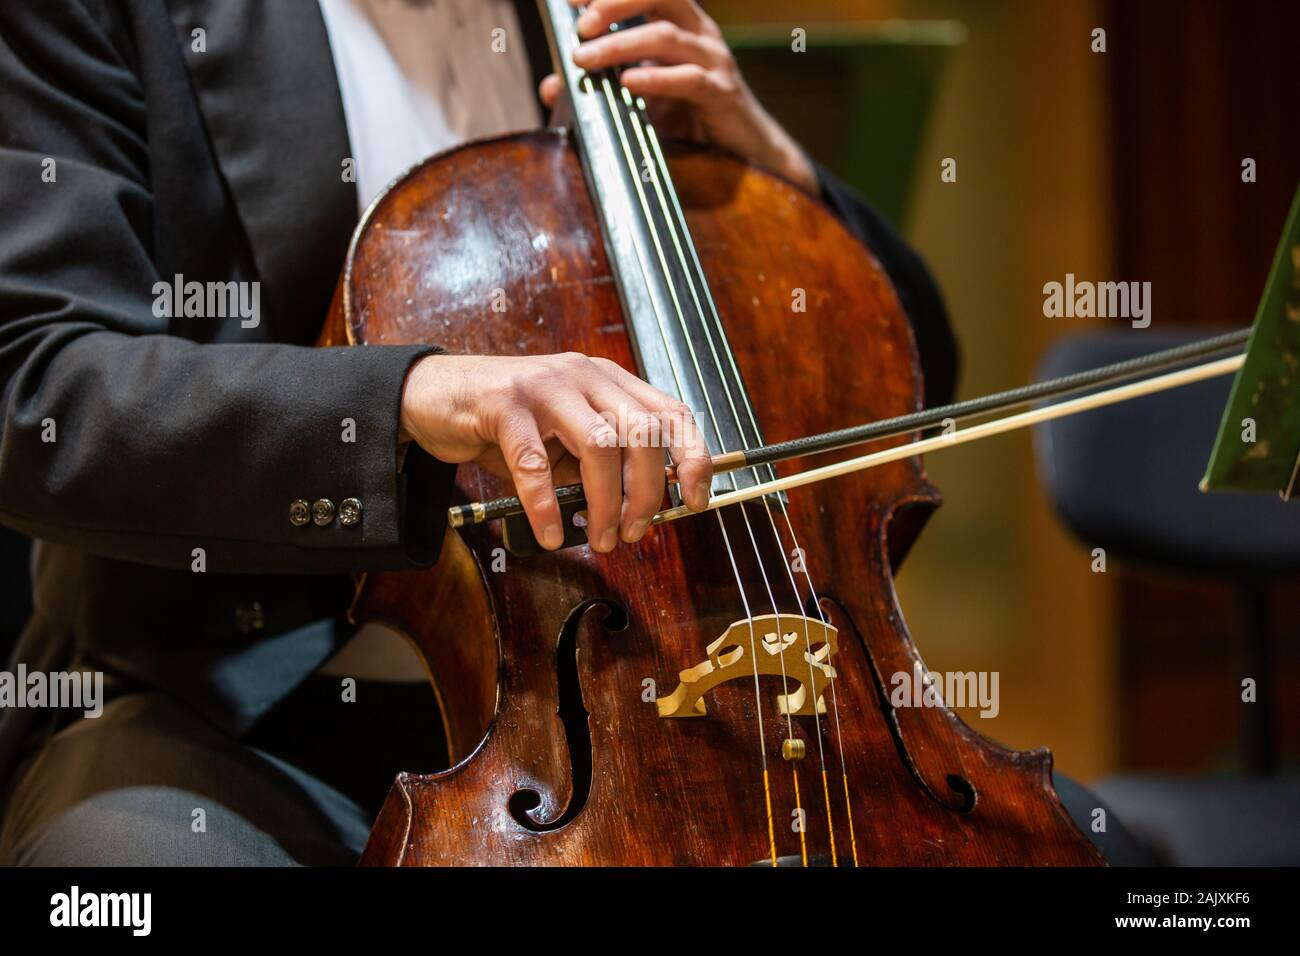 Symphonic orchestra performing on stage and playing a classical music concert, cellist in the foreground Stock Photo